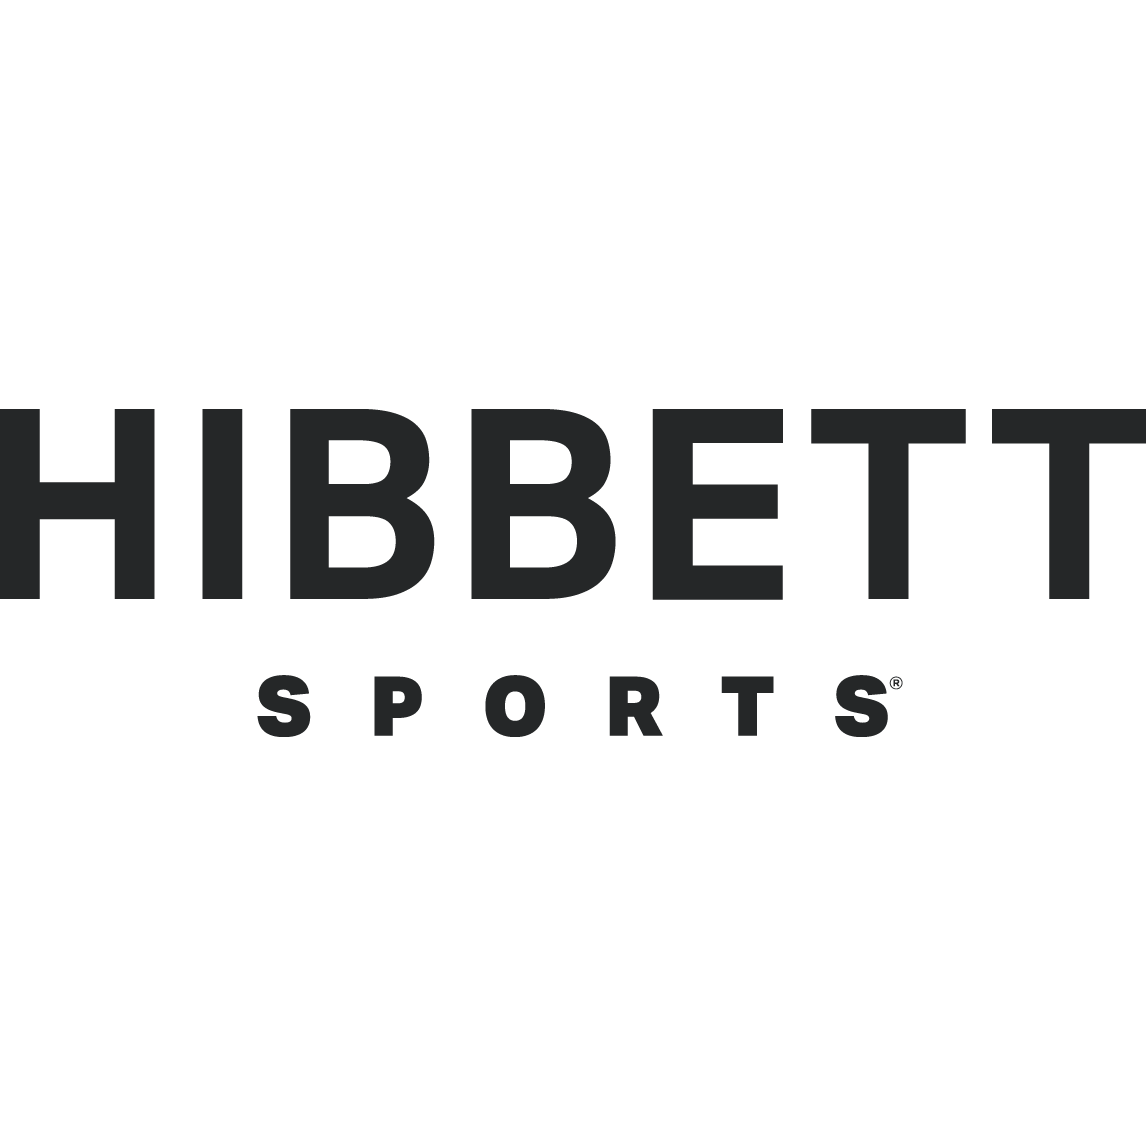 Hibbett Sports - Phenix City, AL - Shoes